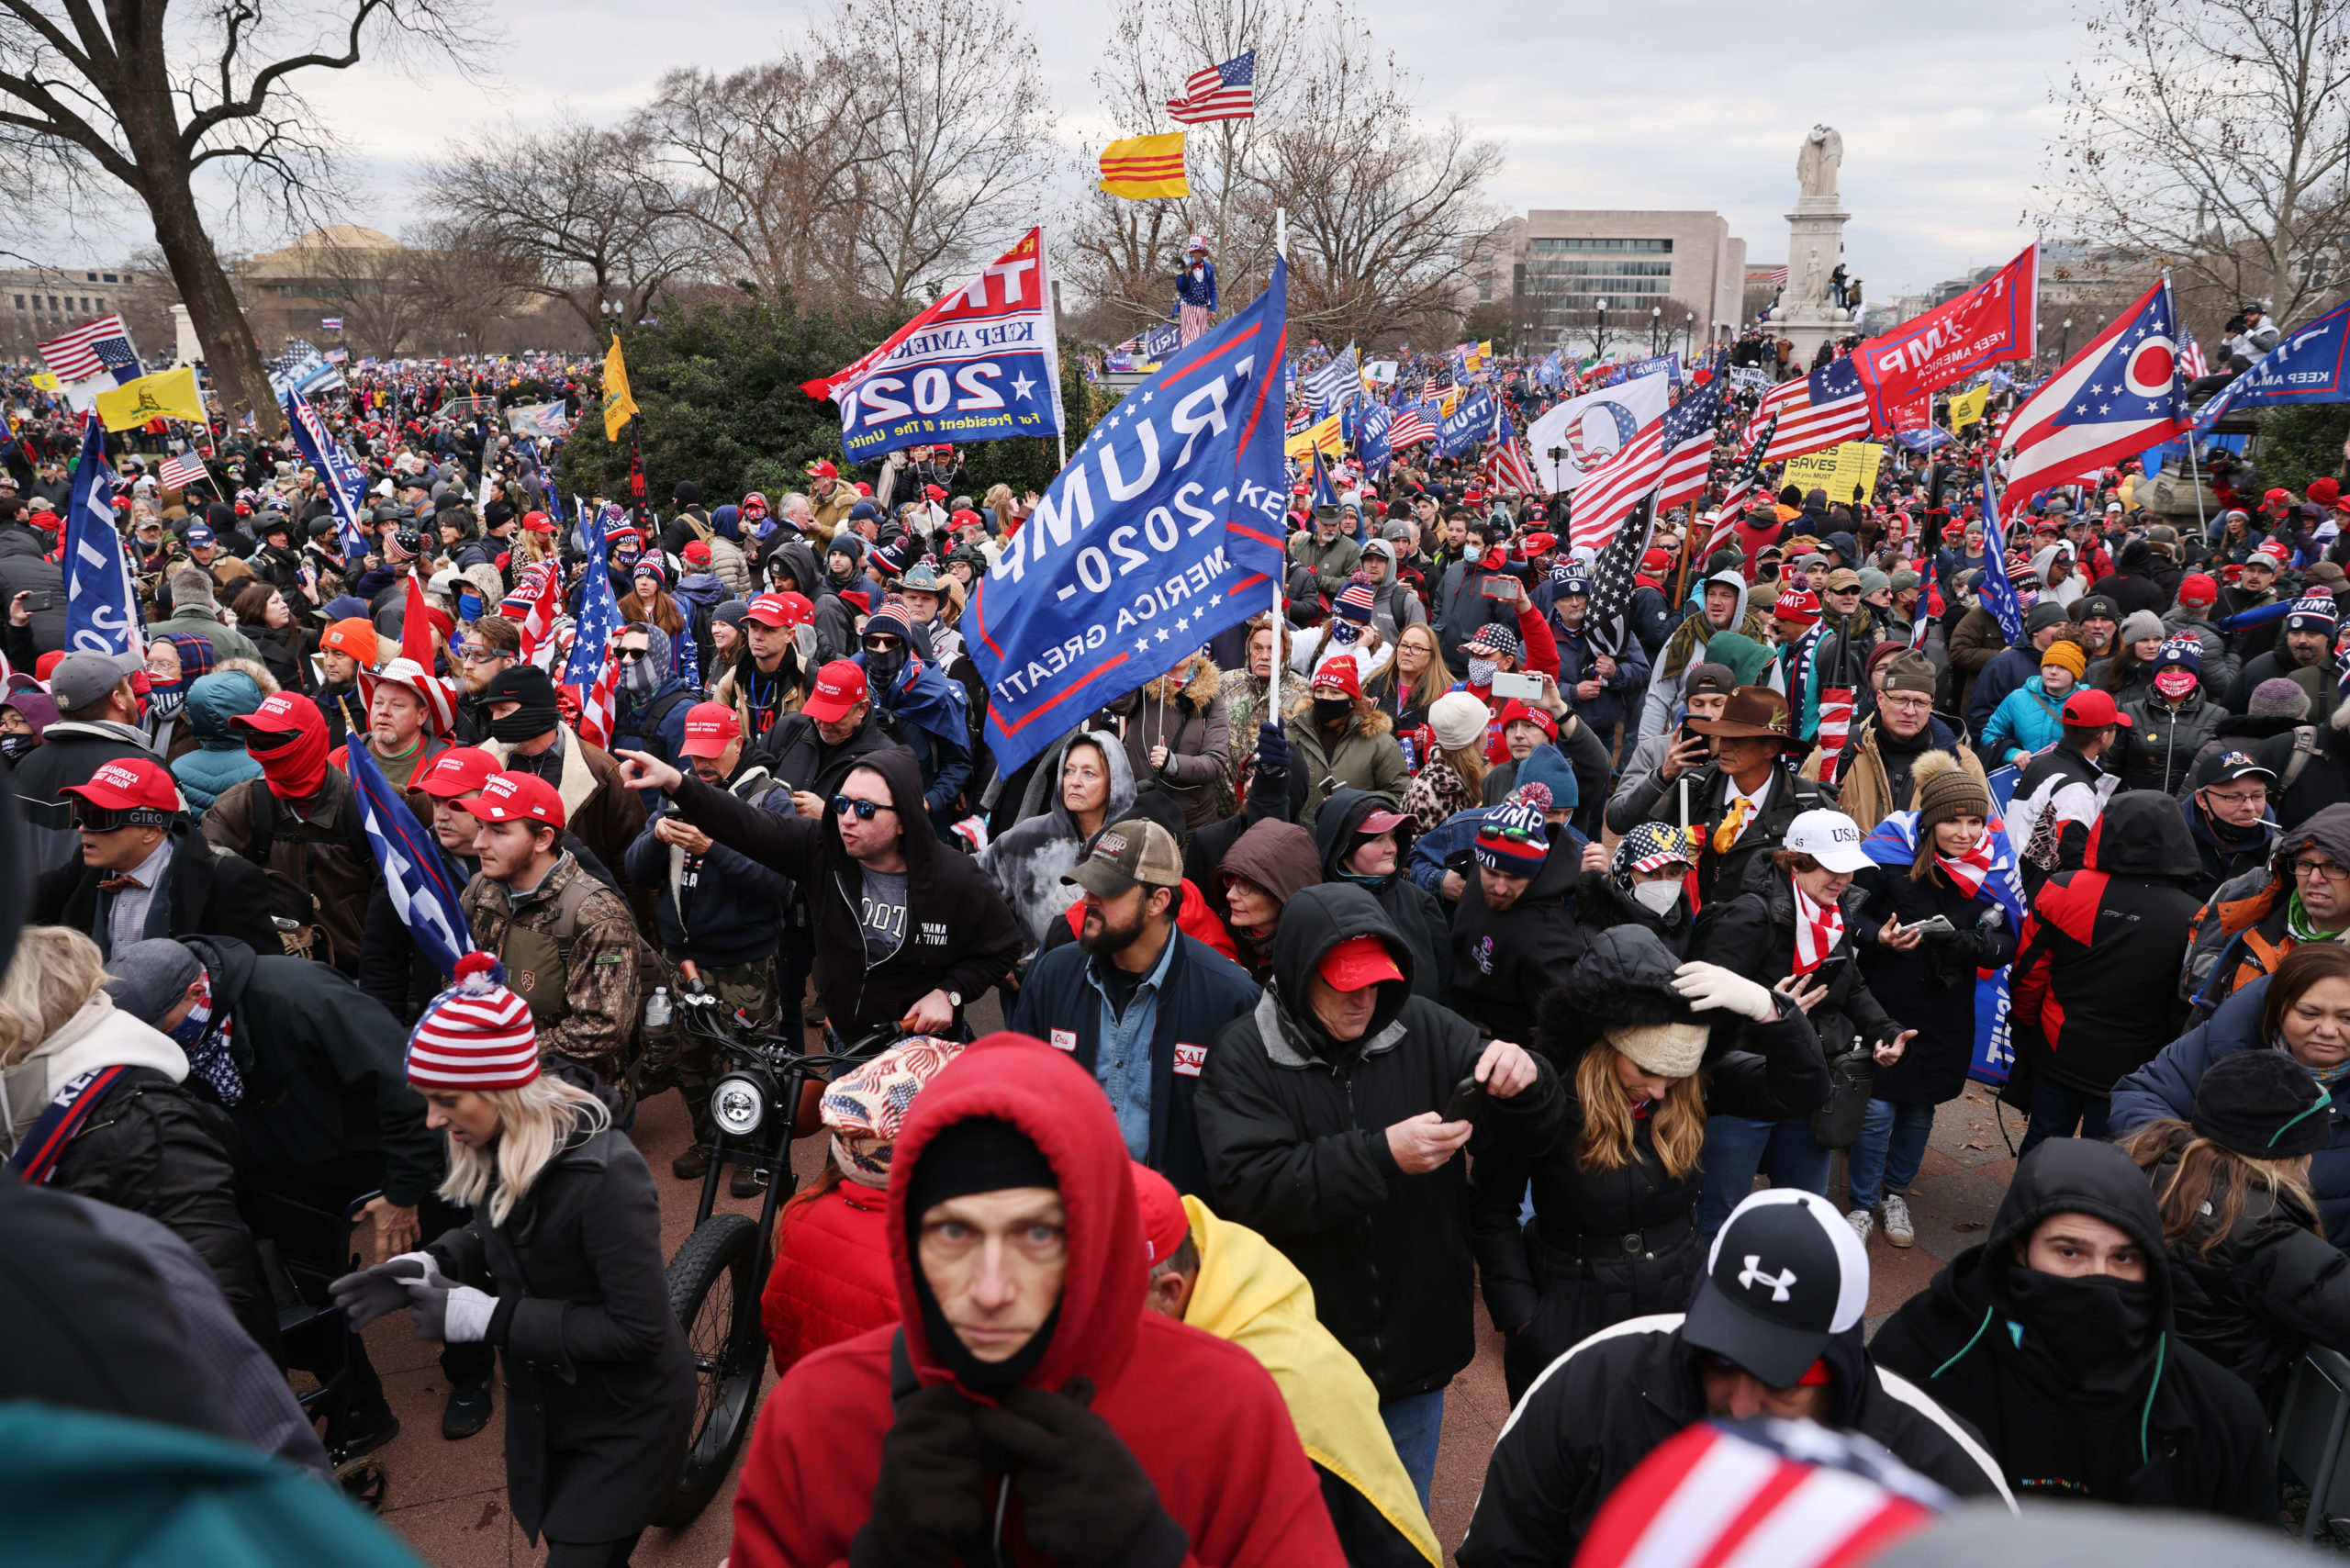 "WASHINGTON, DC - JANUARY 06: Thousands of Donald Trump supporters gather outside the U.S. Capitol building following a ""Stop the Steal"" rally on January 06, 2021 in Washington, DC. A large group of protesters stormed the historic building, breaking windows and clashing with police. Trump supporters had gathered in the nation's capital today to protest the ratification of President-elect Joe Biden's Electoral College victory over President Trump in the 2020 election. (Photo by Spencer Platt/Getty Images)"